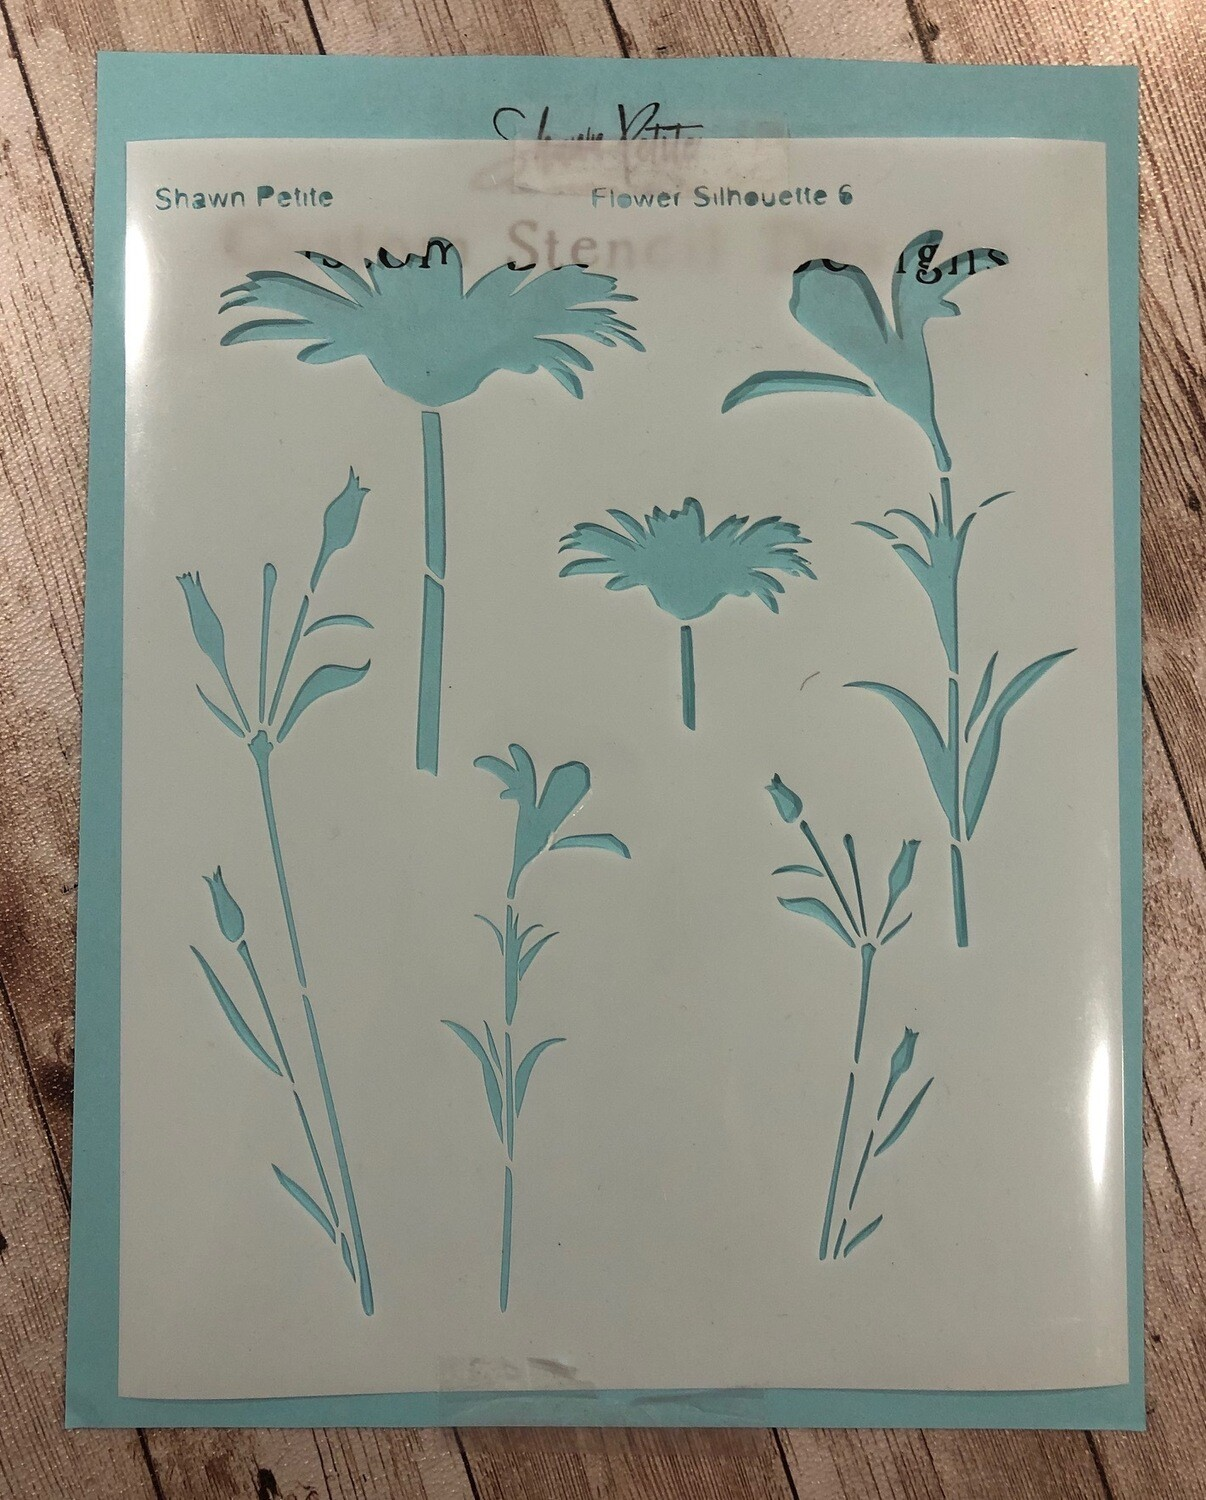 Flower Silhouette 6 stencil clearance